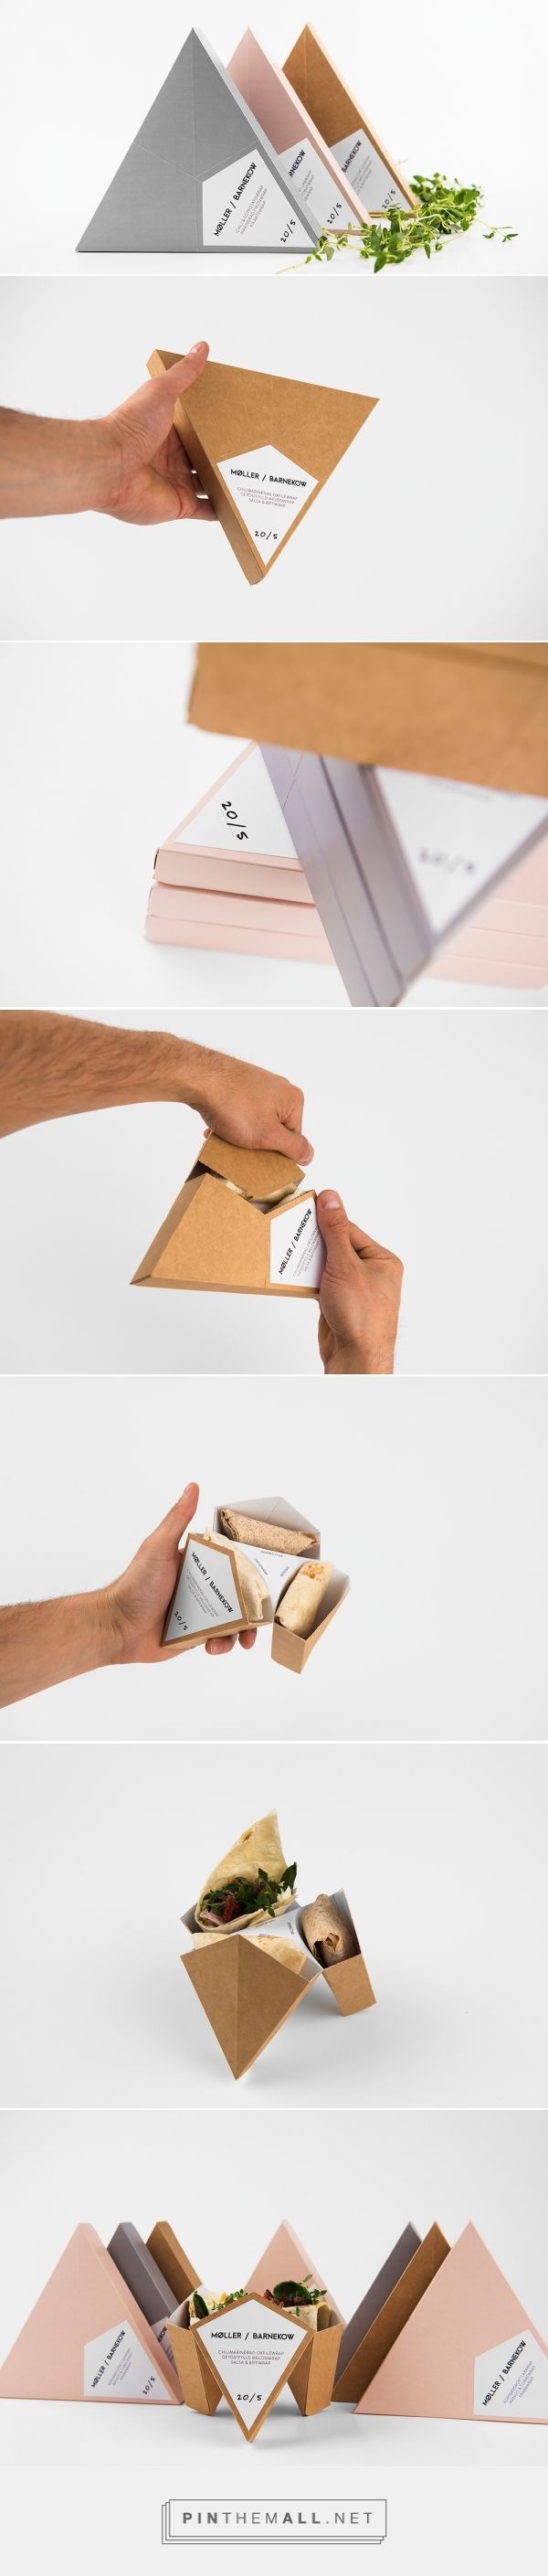 best package design images on Pinterest Packaging Chocolates